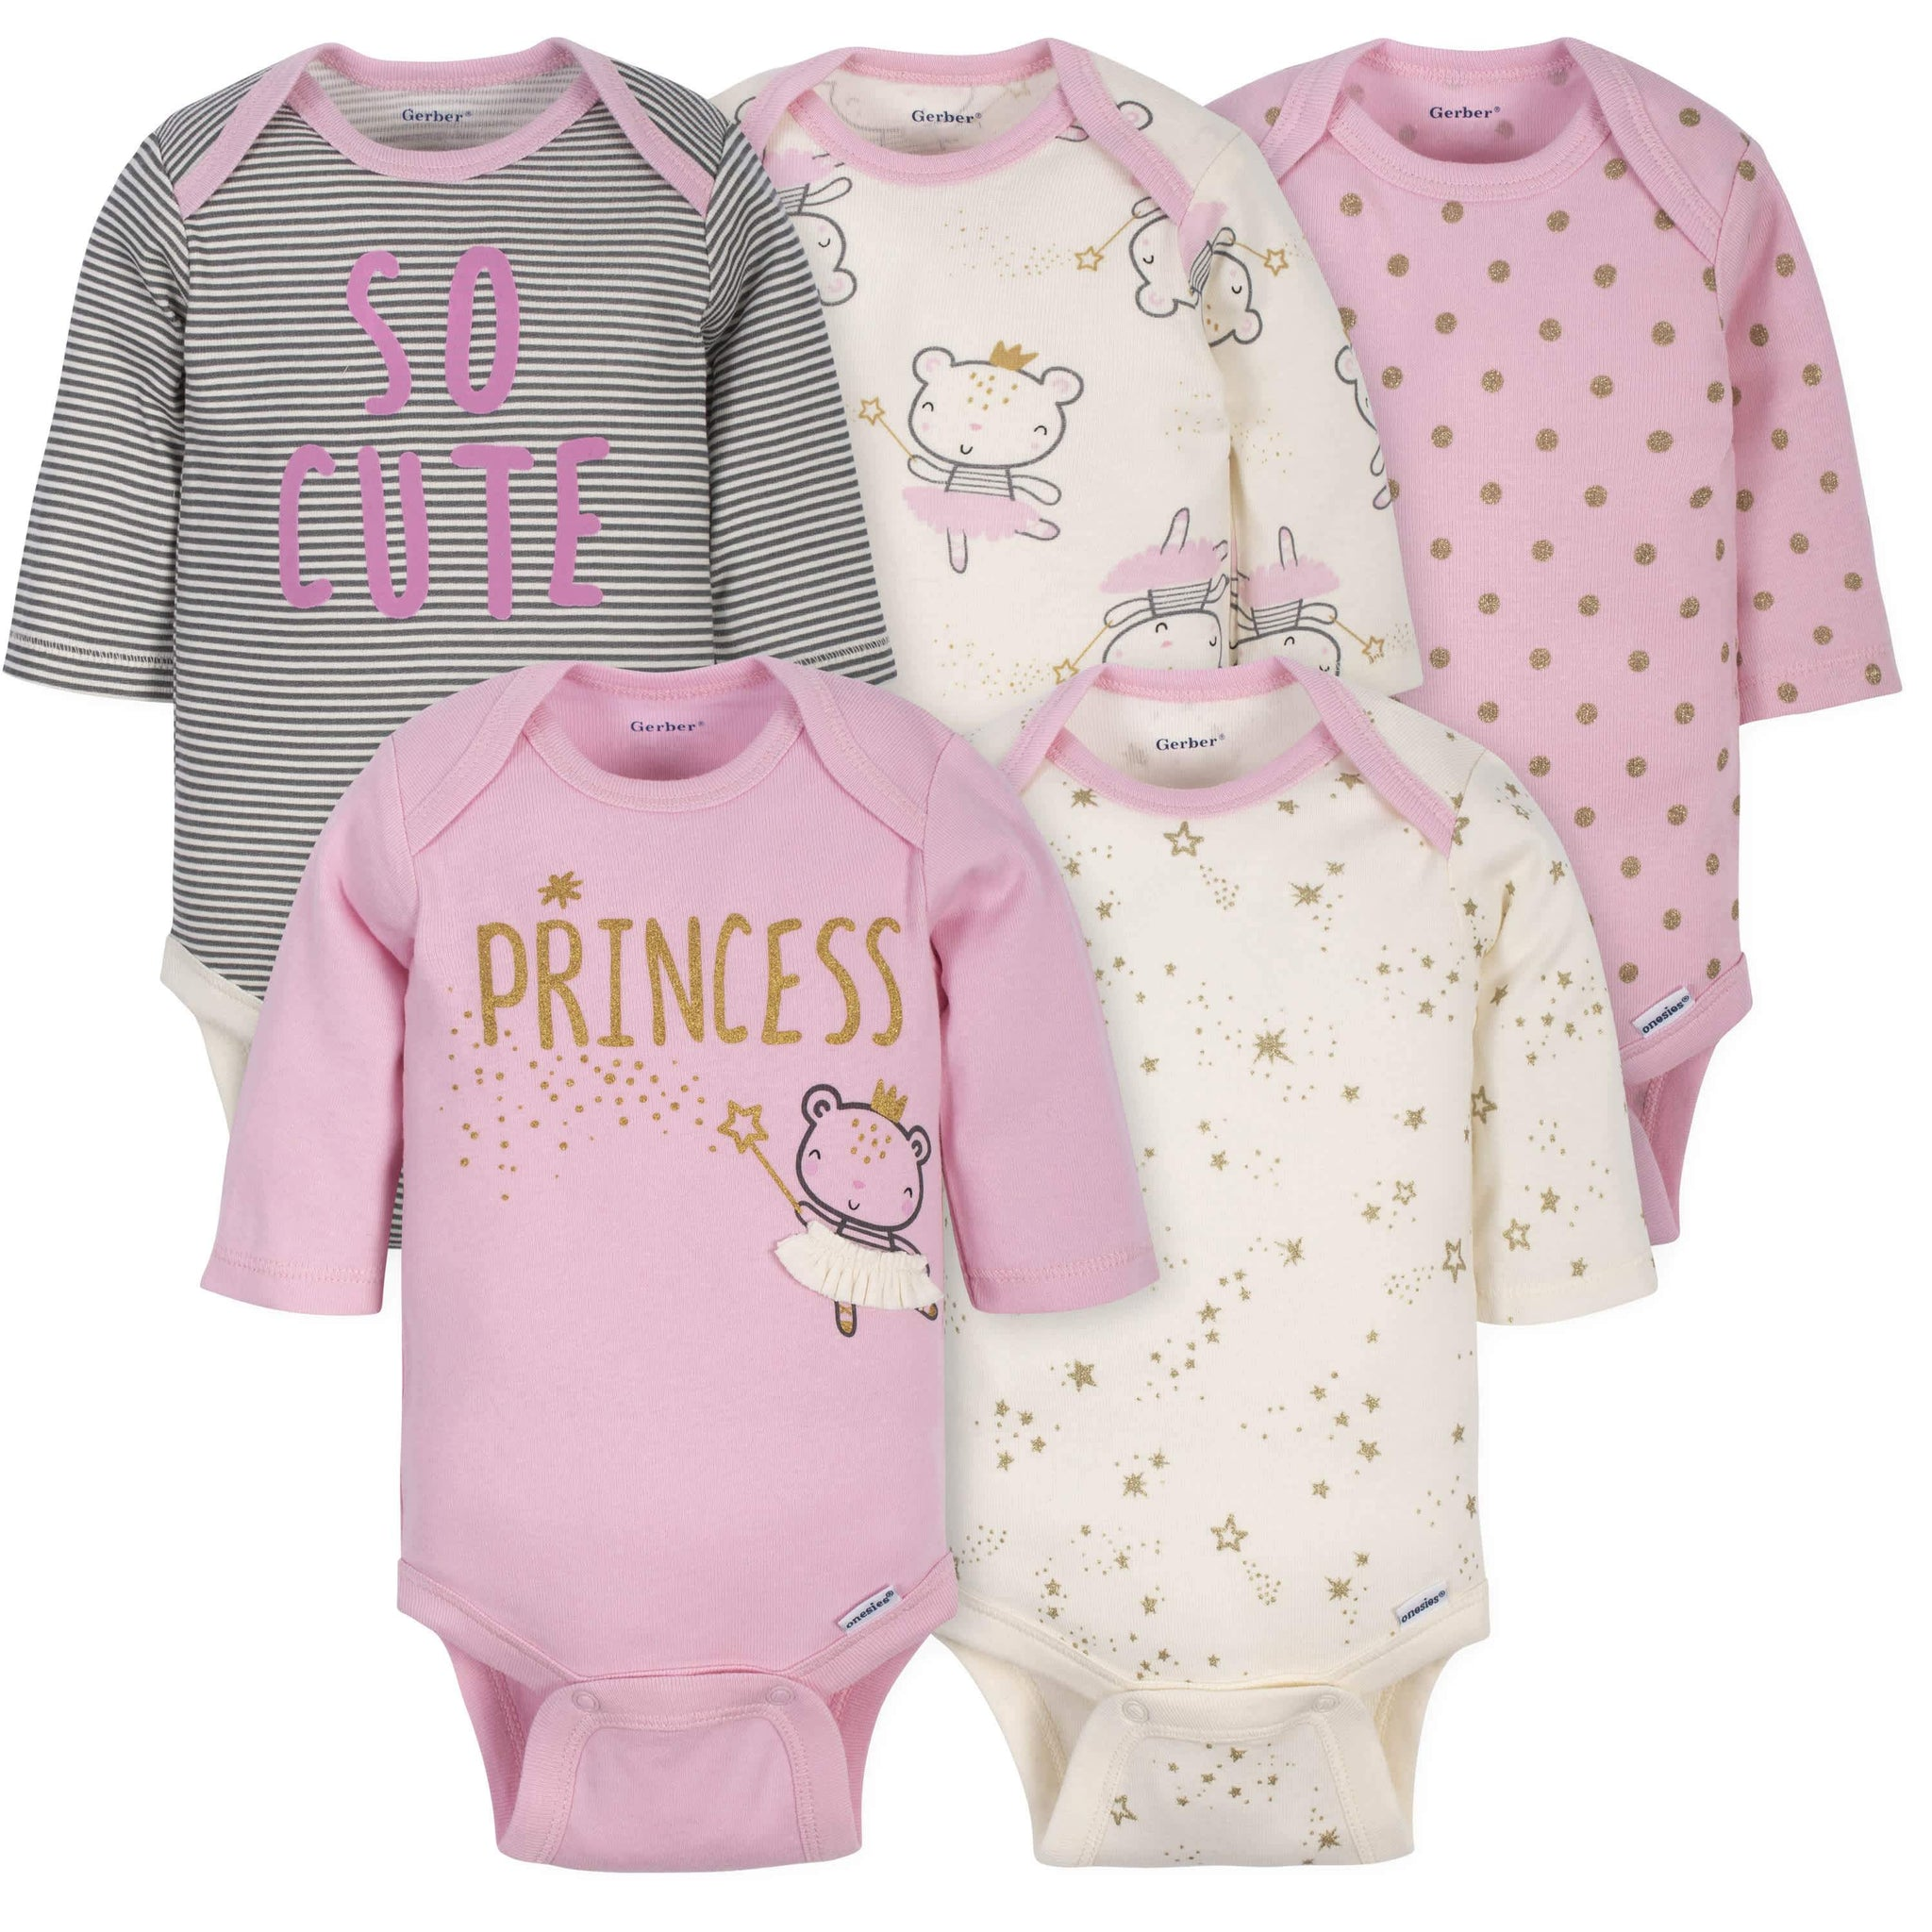 Gerber® 5-Pack Baby Girls Princess Long Sleeve Onesies® Brand Bodysuits